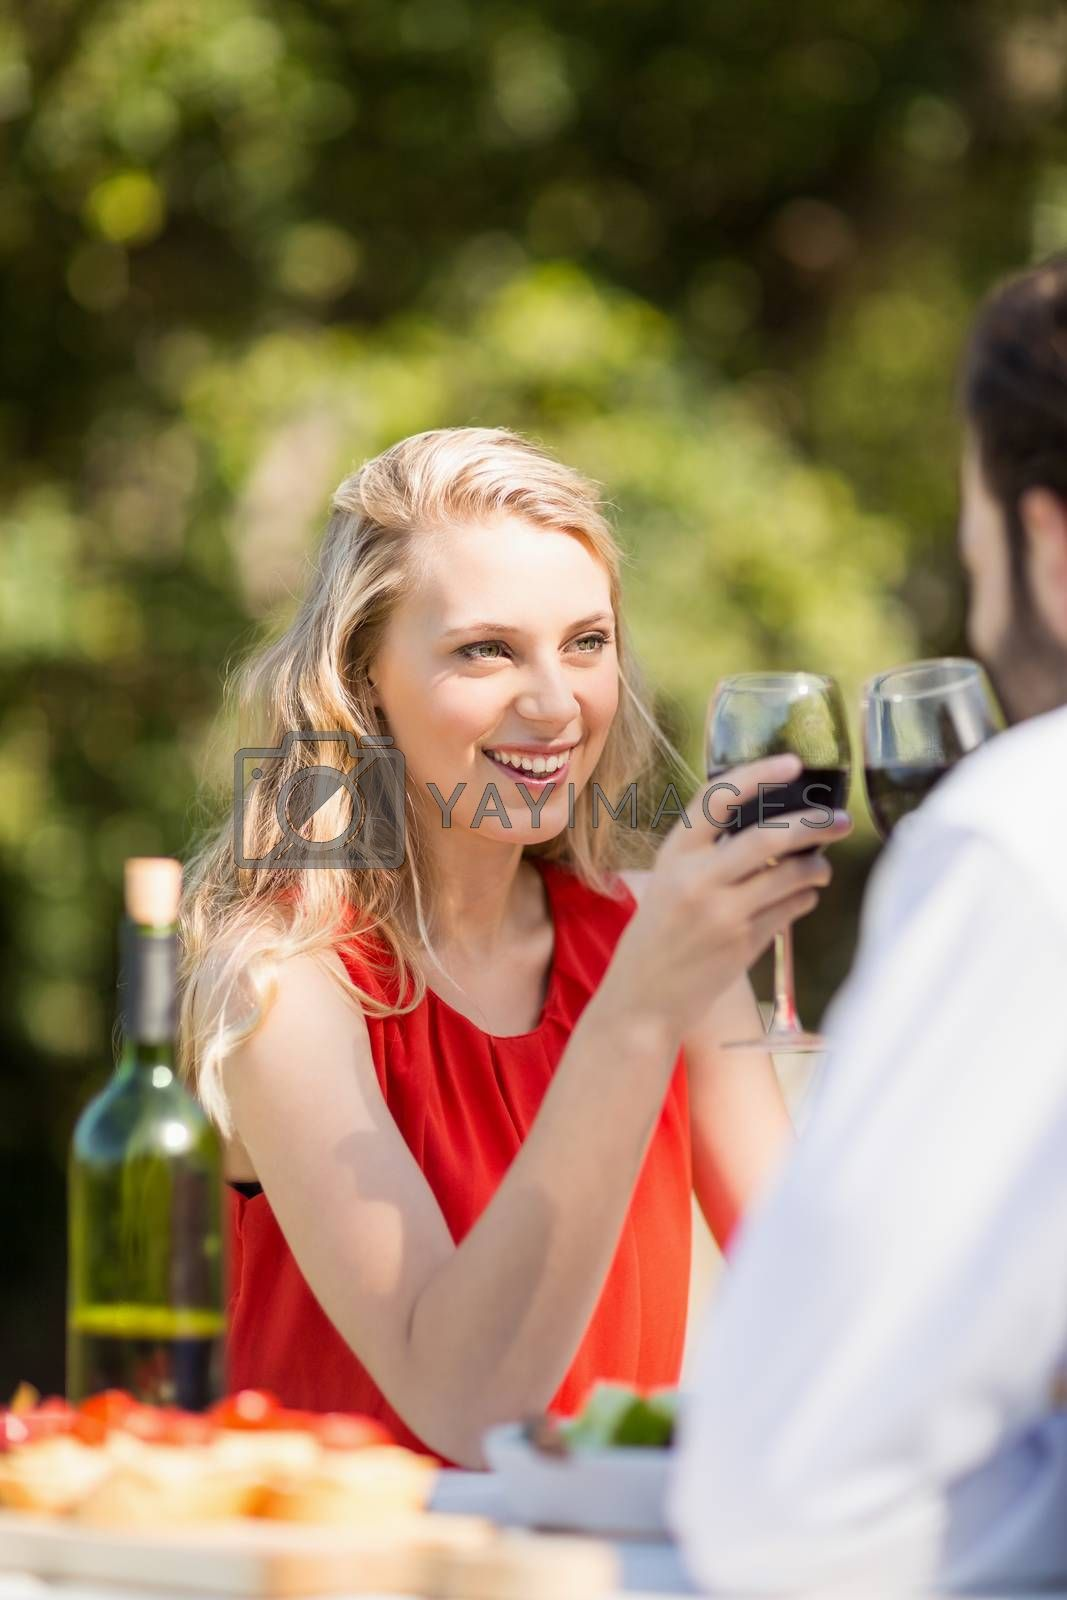 Couple toasting wine glasses while sitting in the restaurant